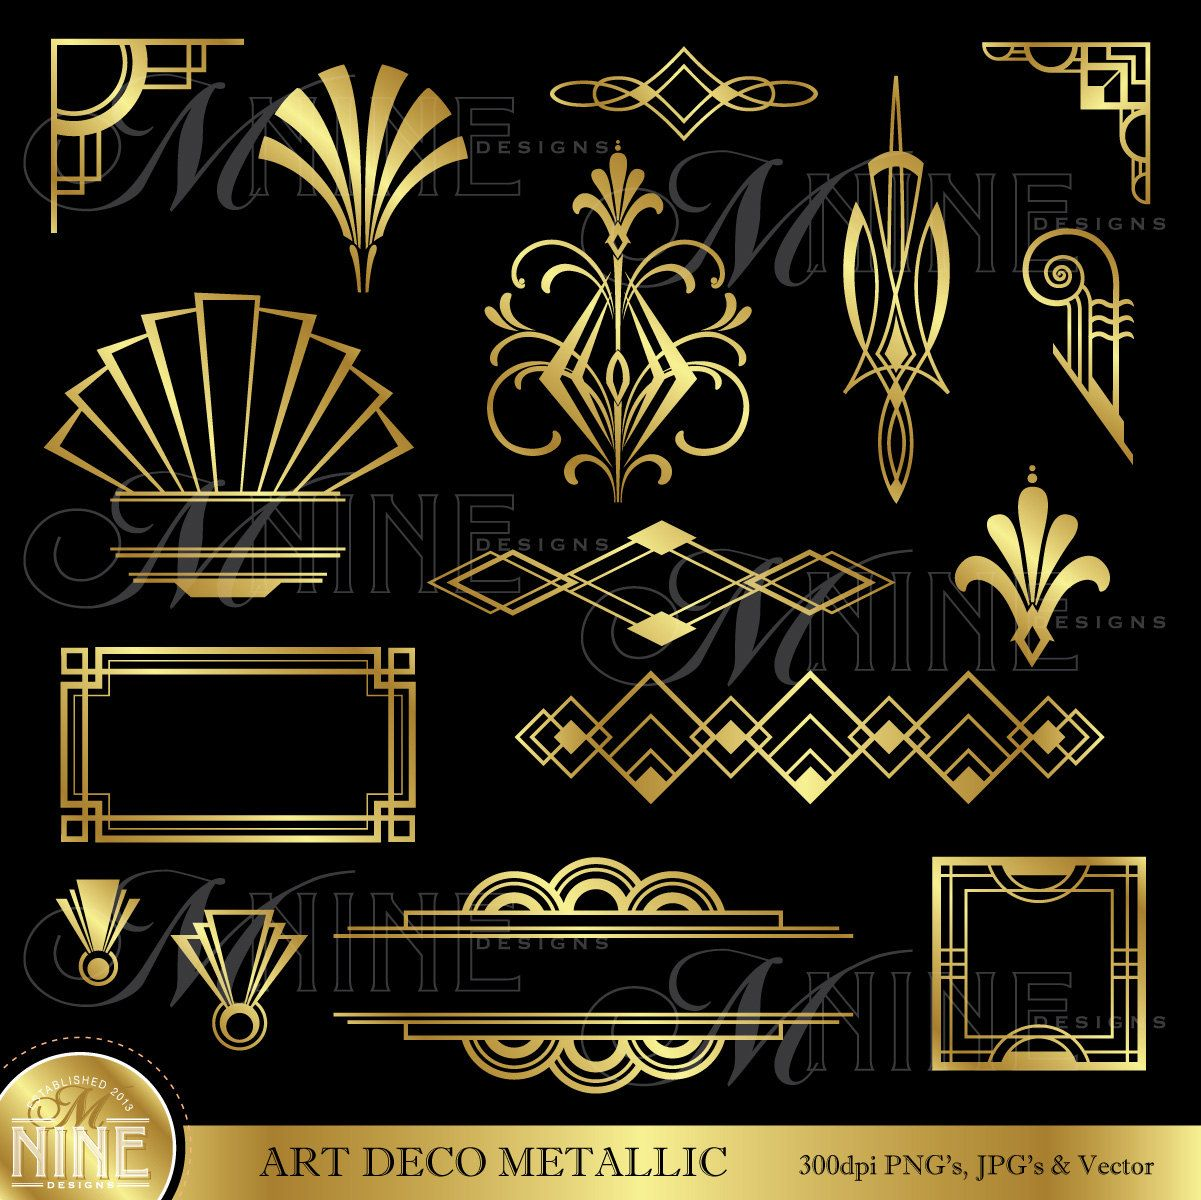 art deco gold metallic style design elements by